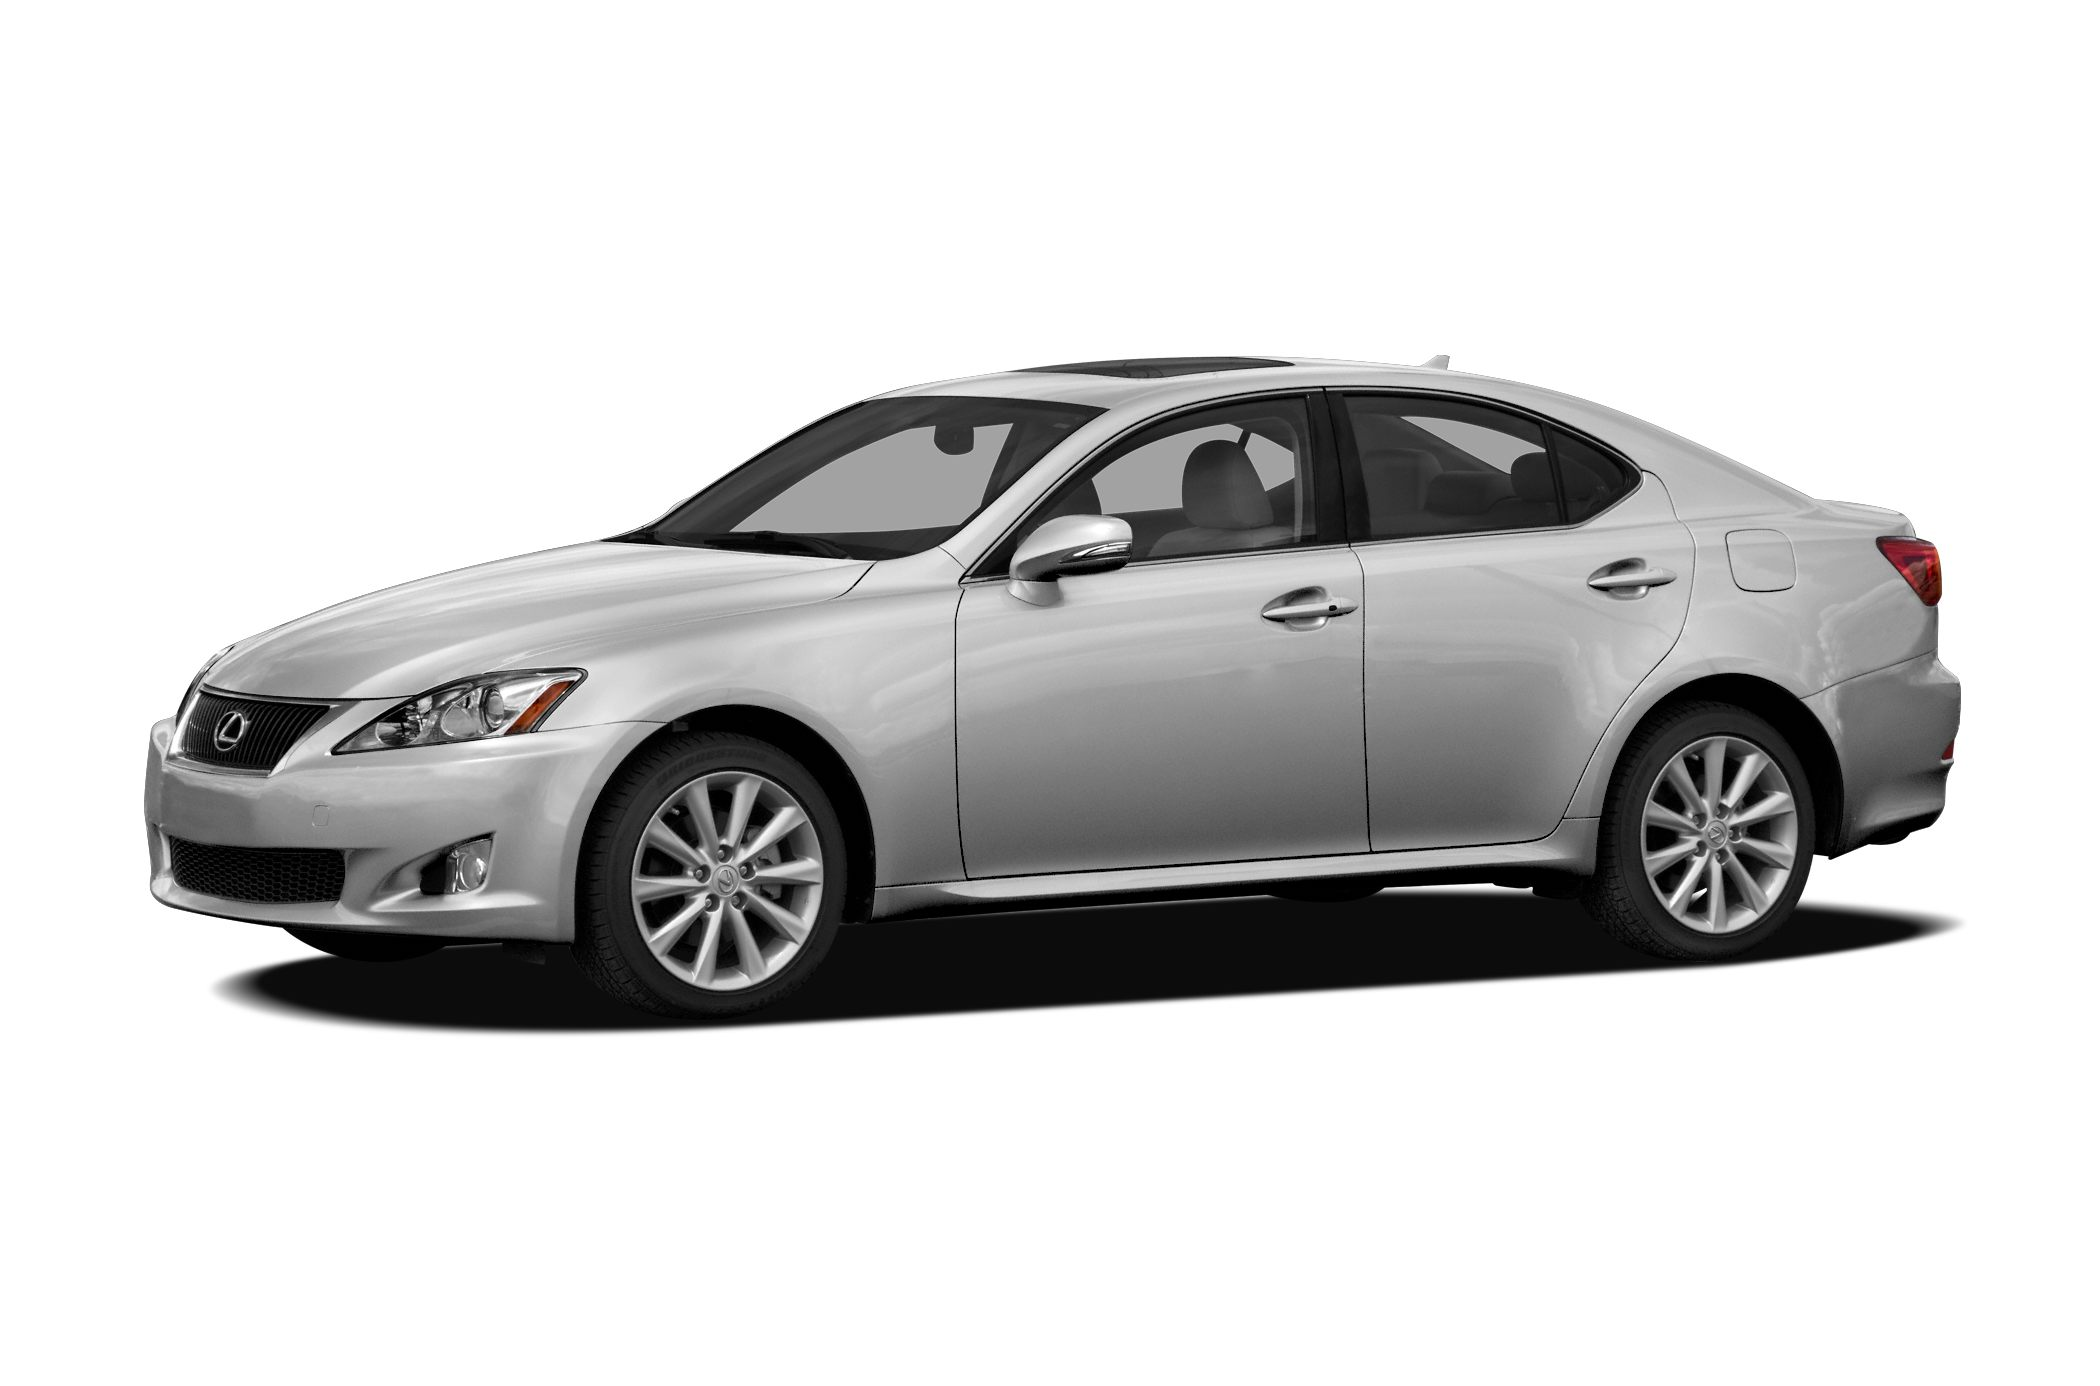 2010 Lexus Is 250 Pricing And Specs